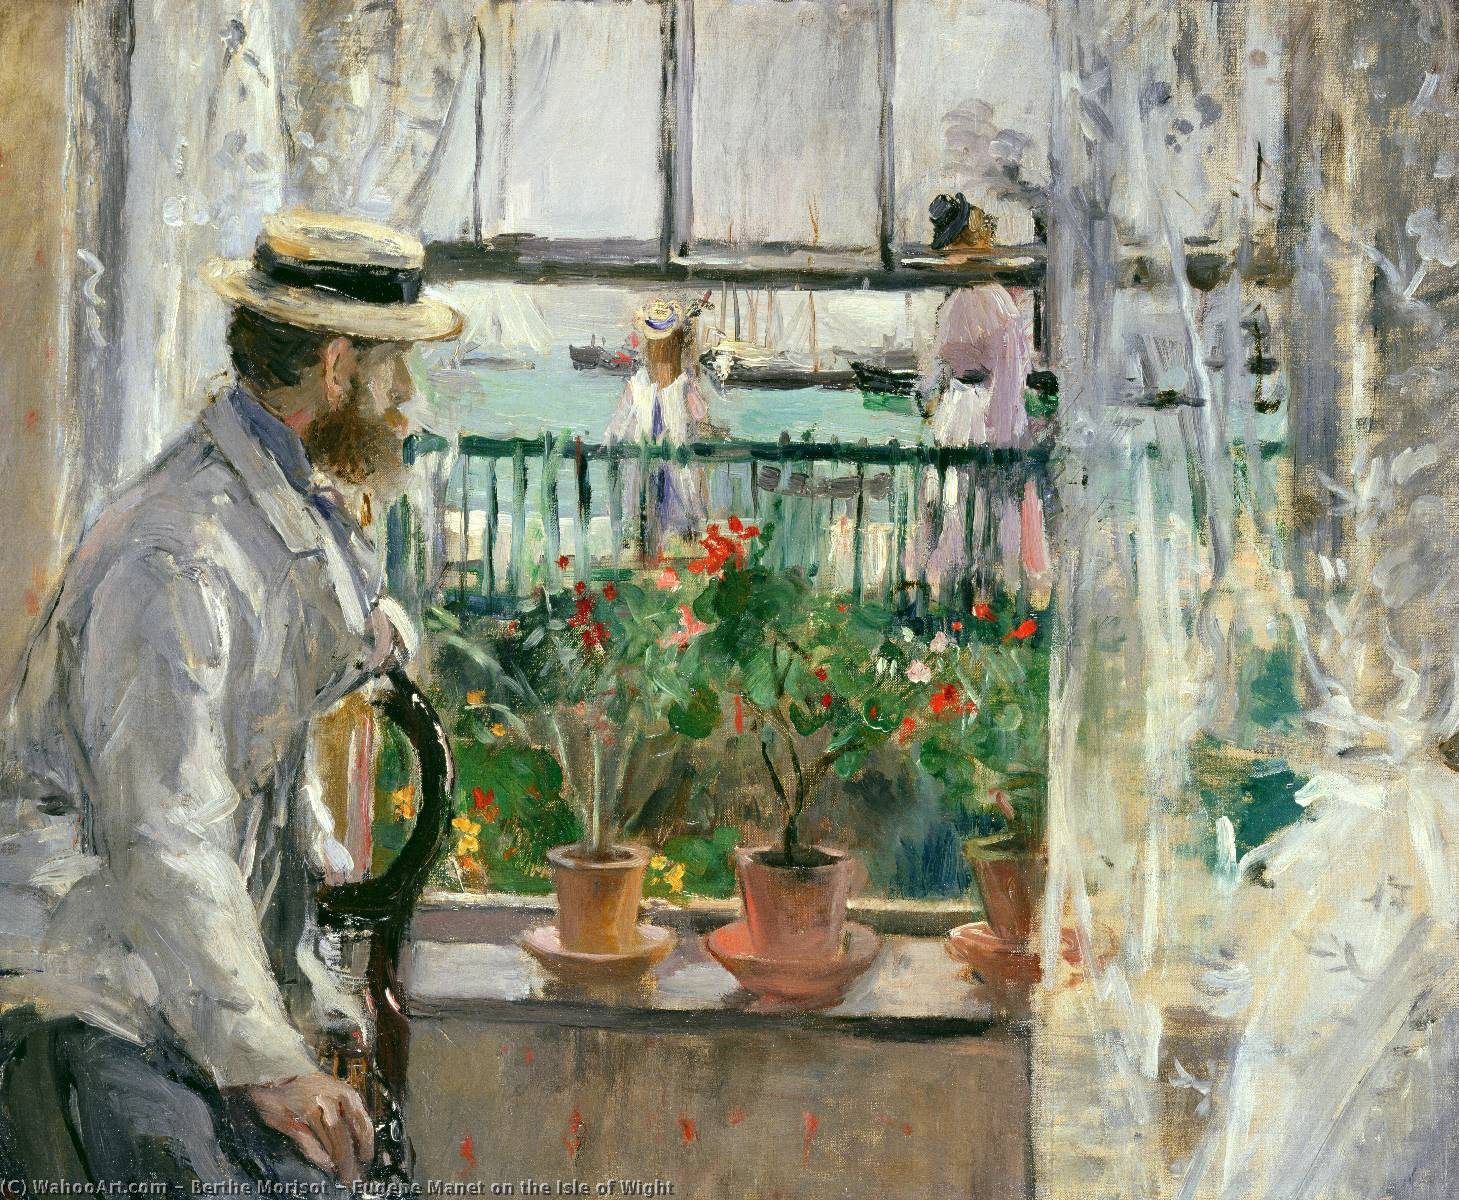 famous painting Eugene Manet on the Isle of Wight of Berthe Morisot